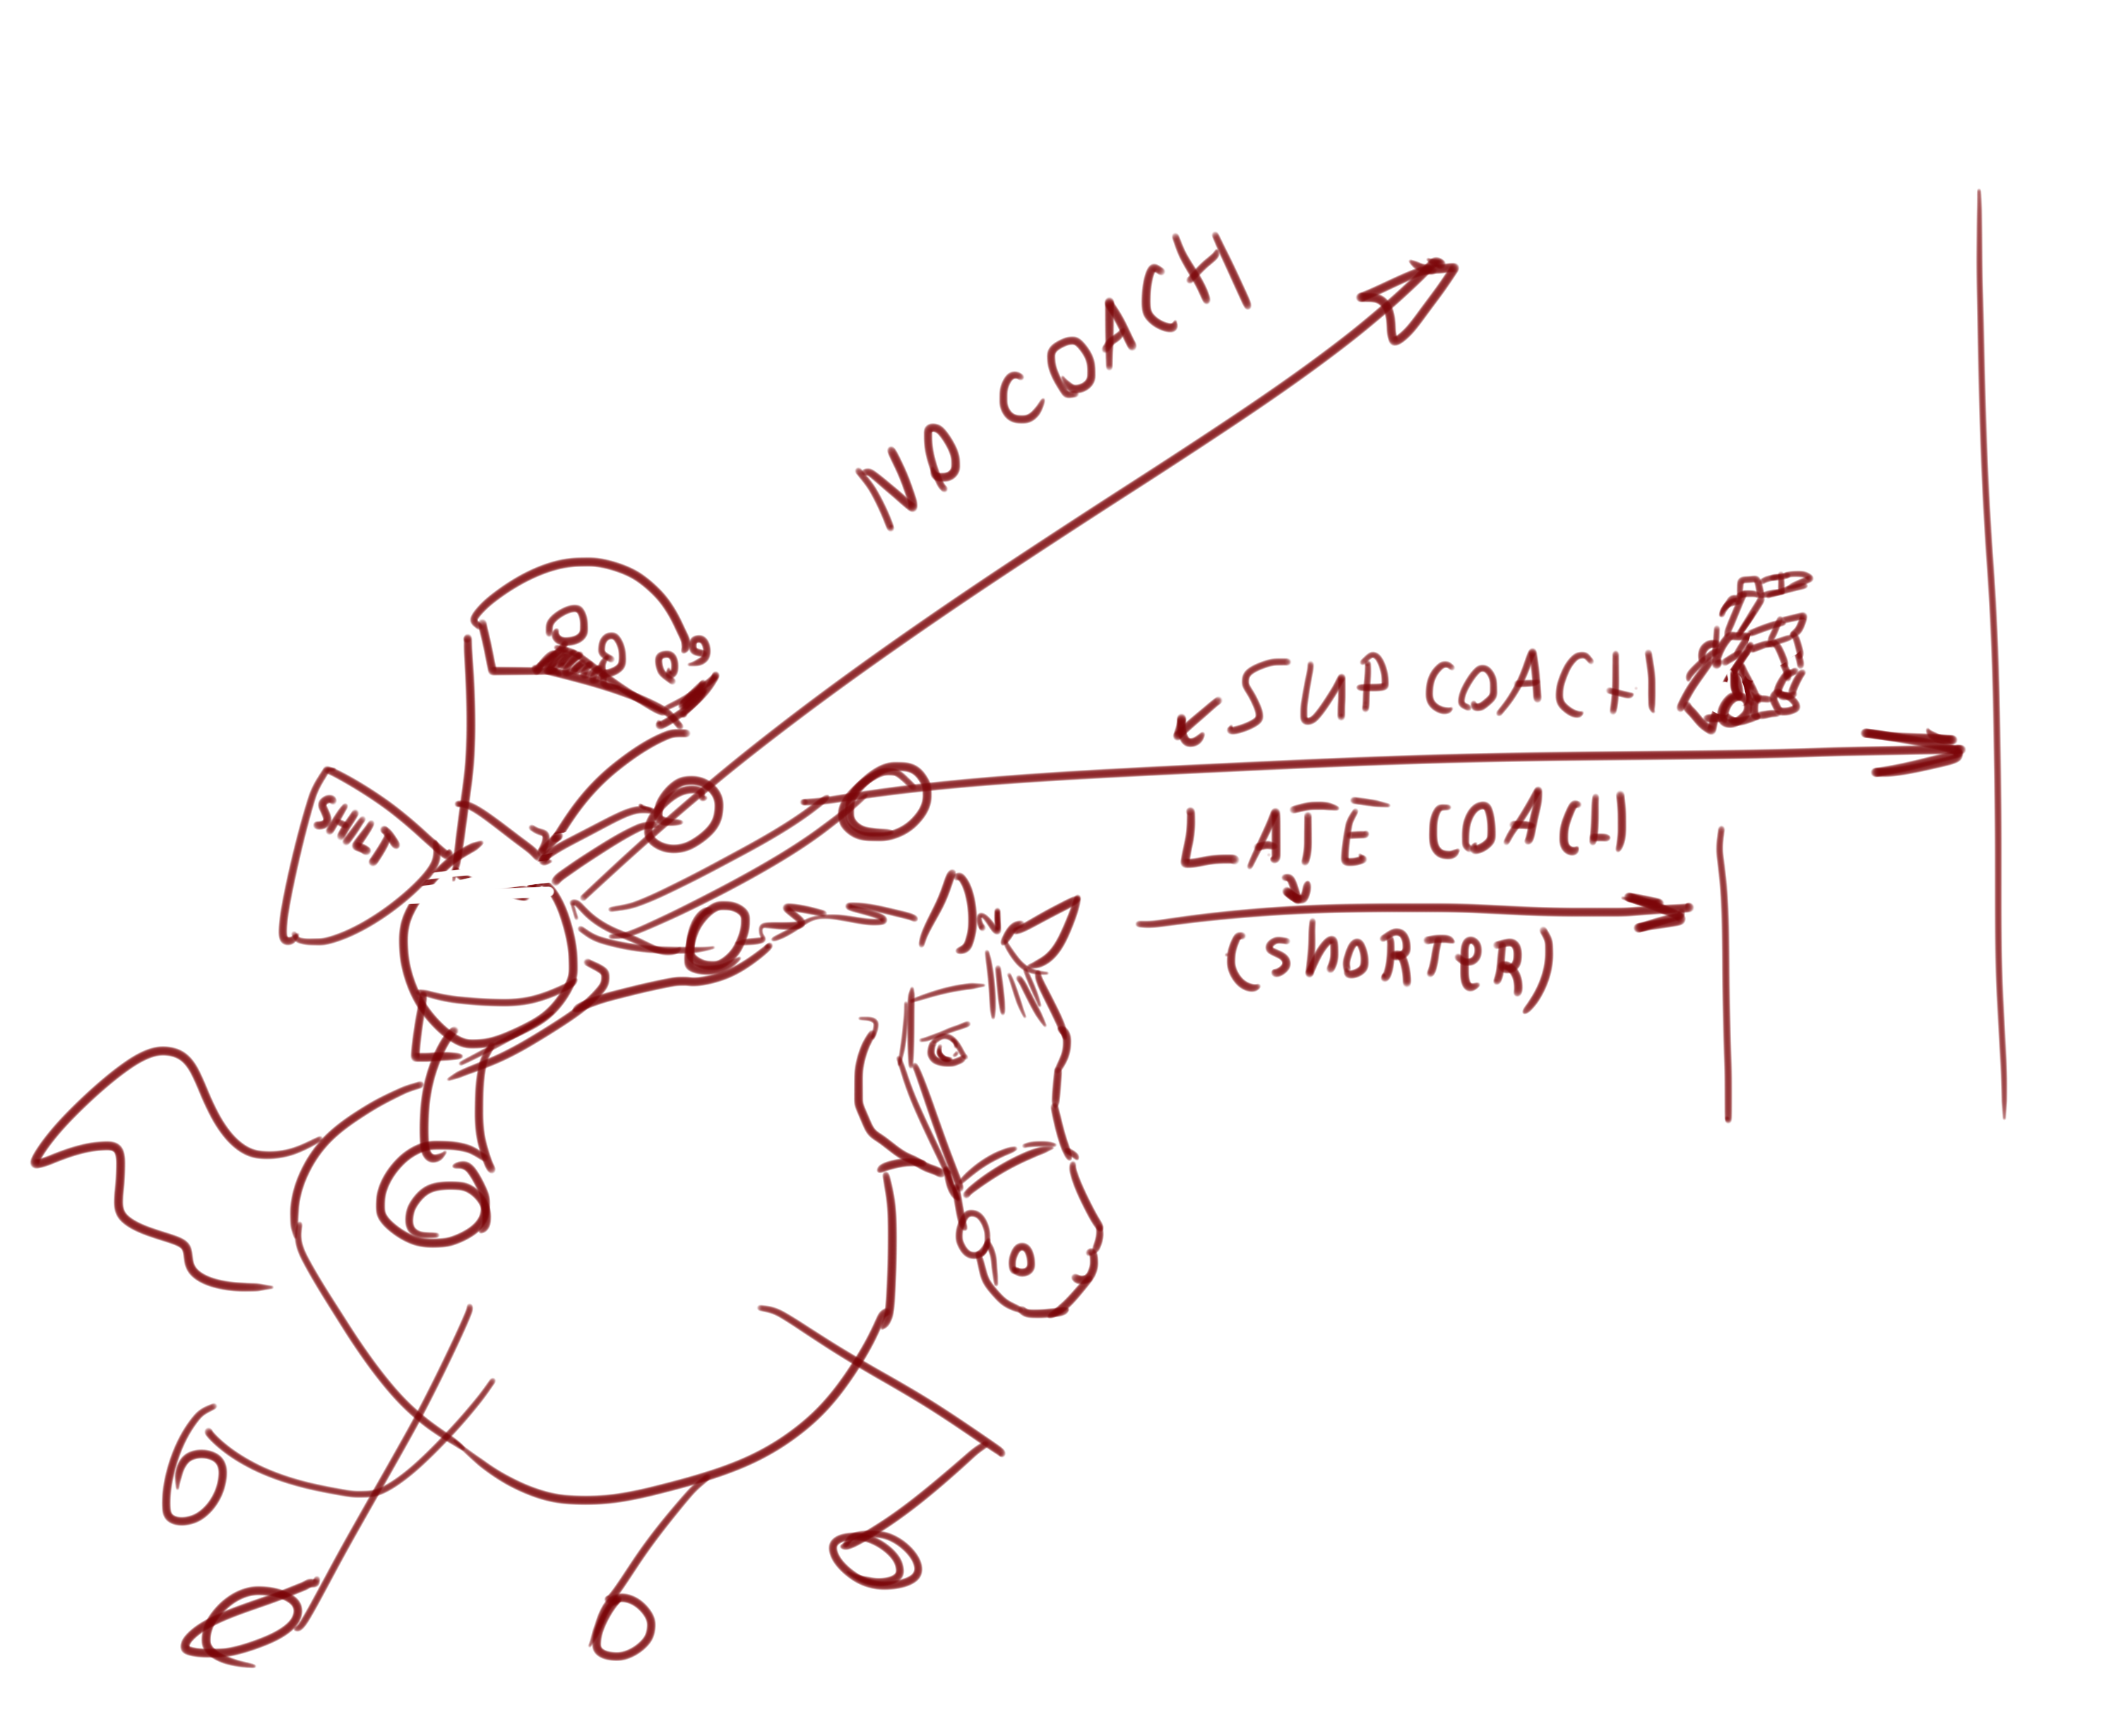 coach.png